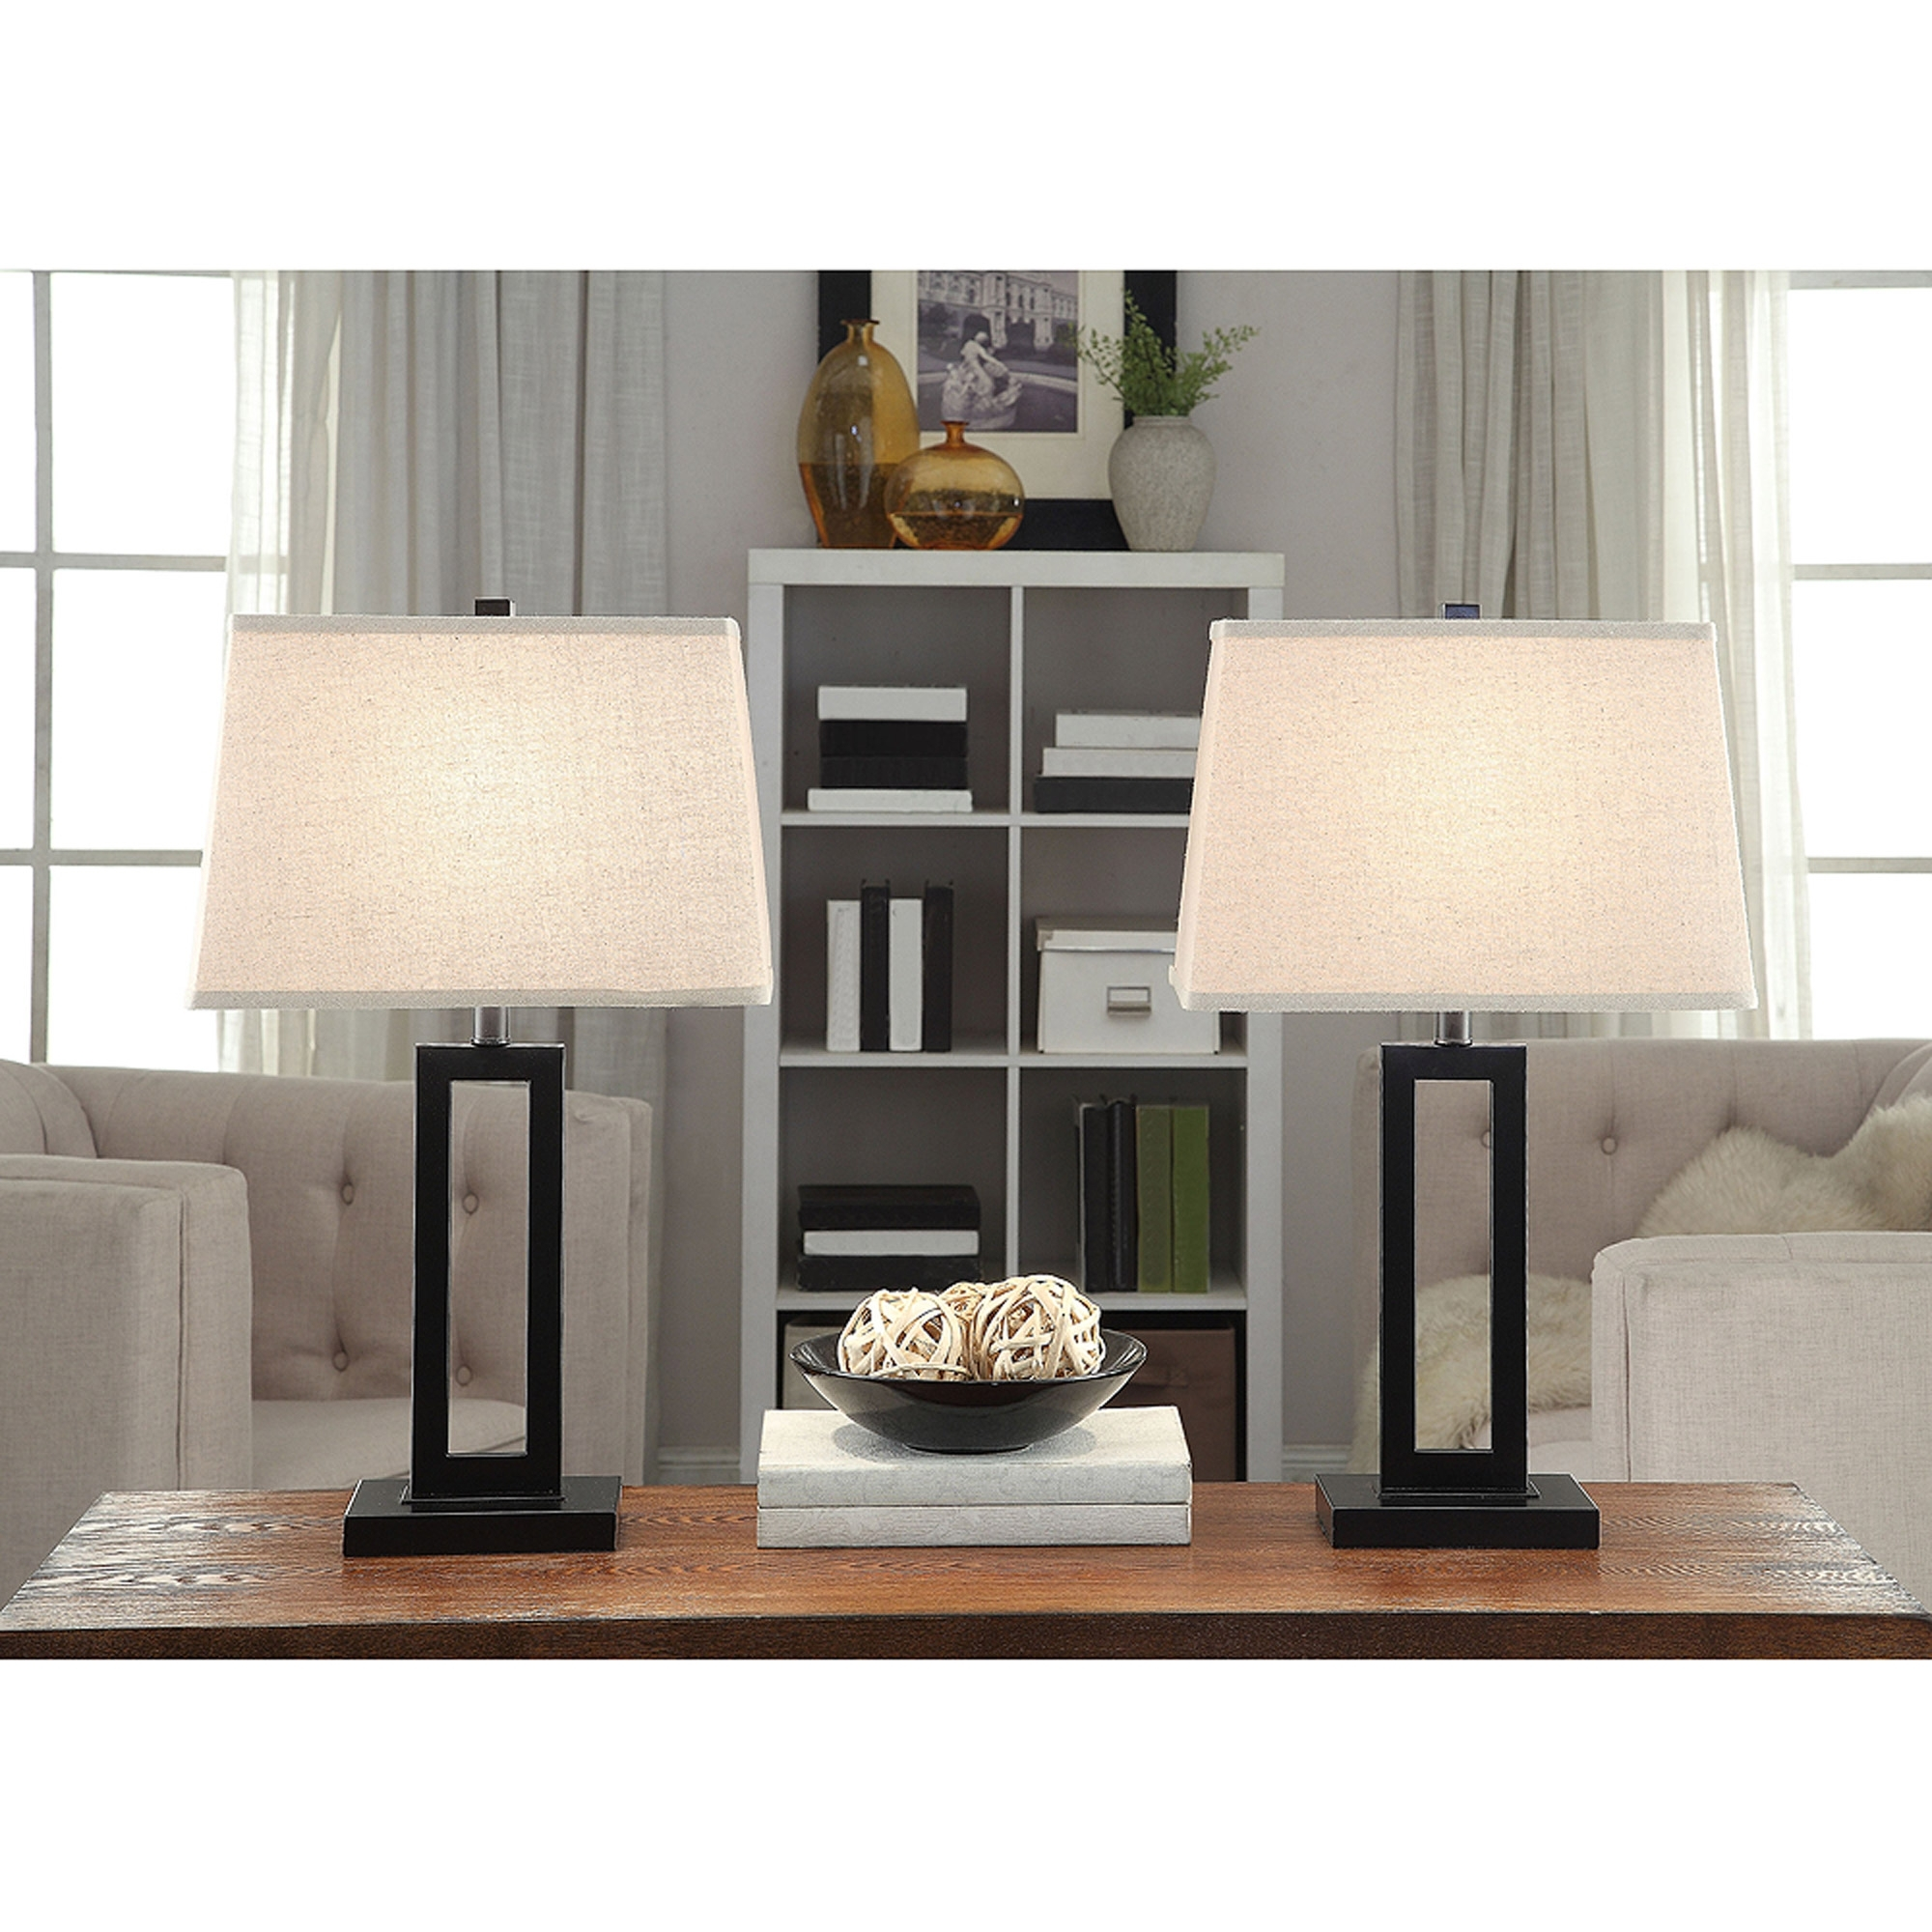 Table Lamp Set Of 2 Desk Living Room Black Contemporary, Living Room Regarding Most Recent Set Of 2 Living Room Table Lamps (View 11 of 15)